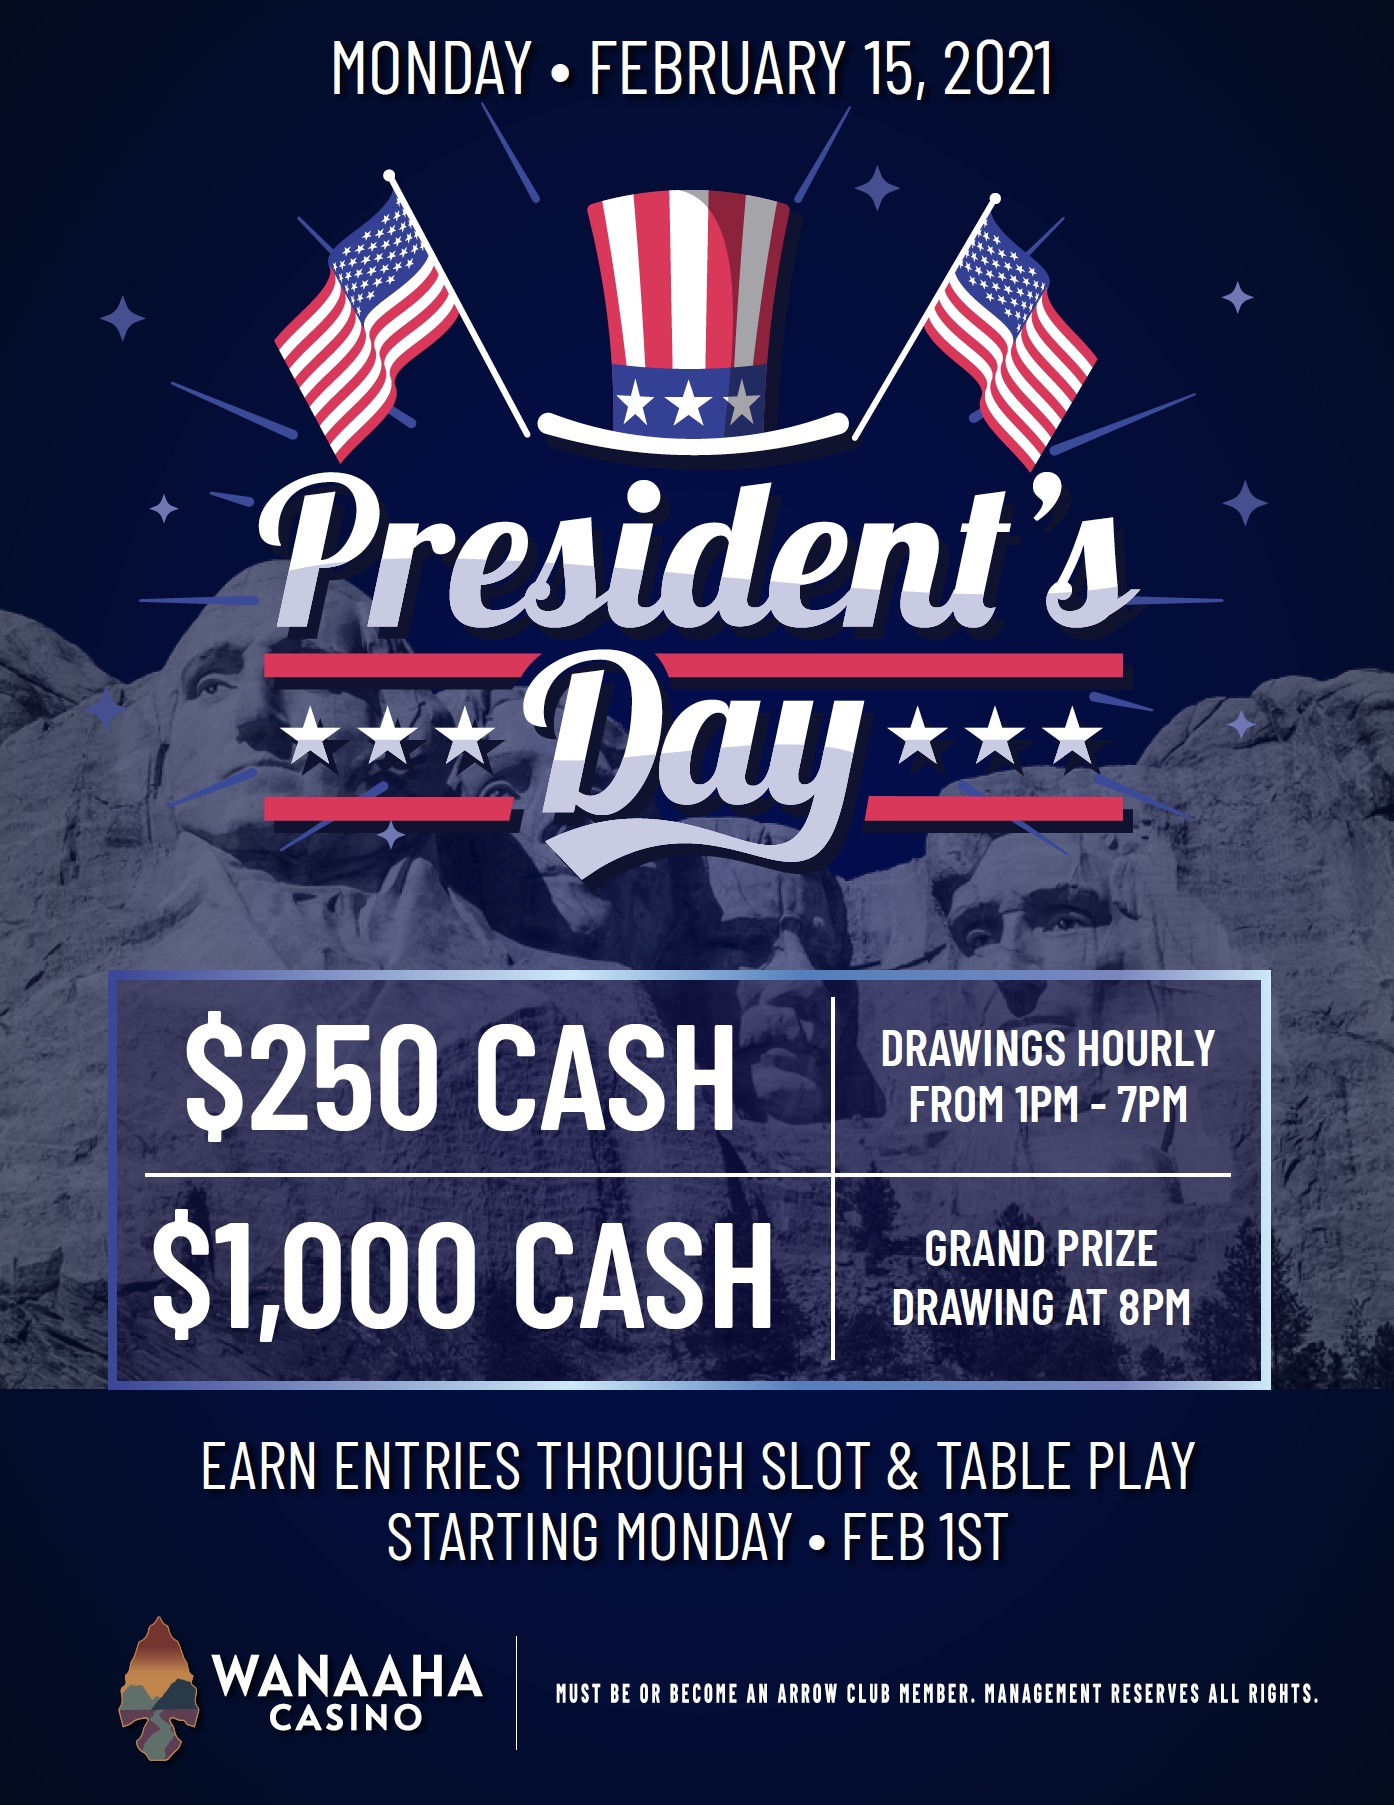 cash giveaway, presidents day, wanaaha casino